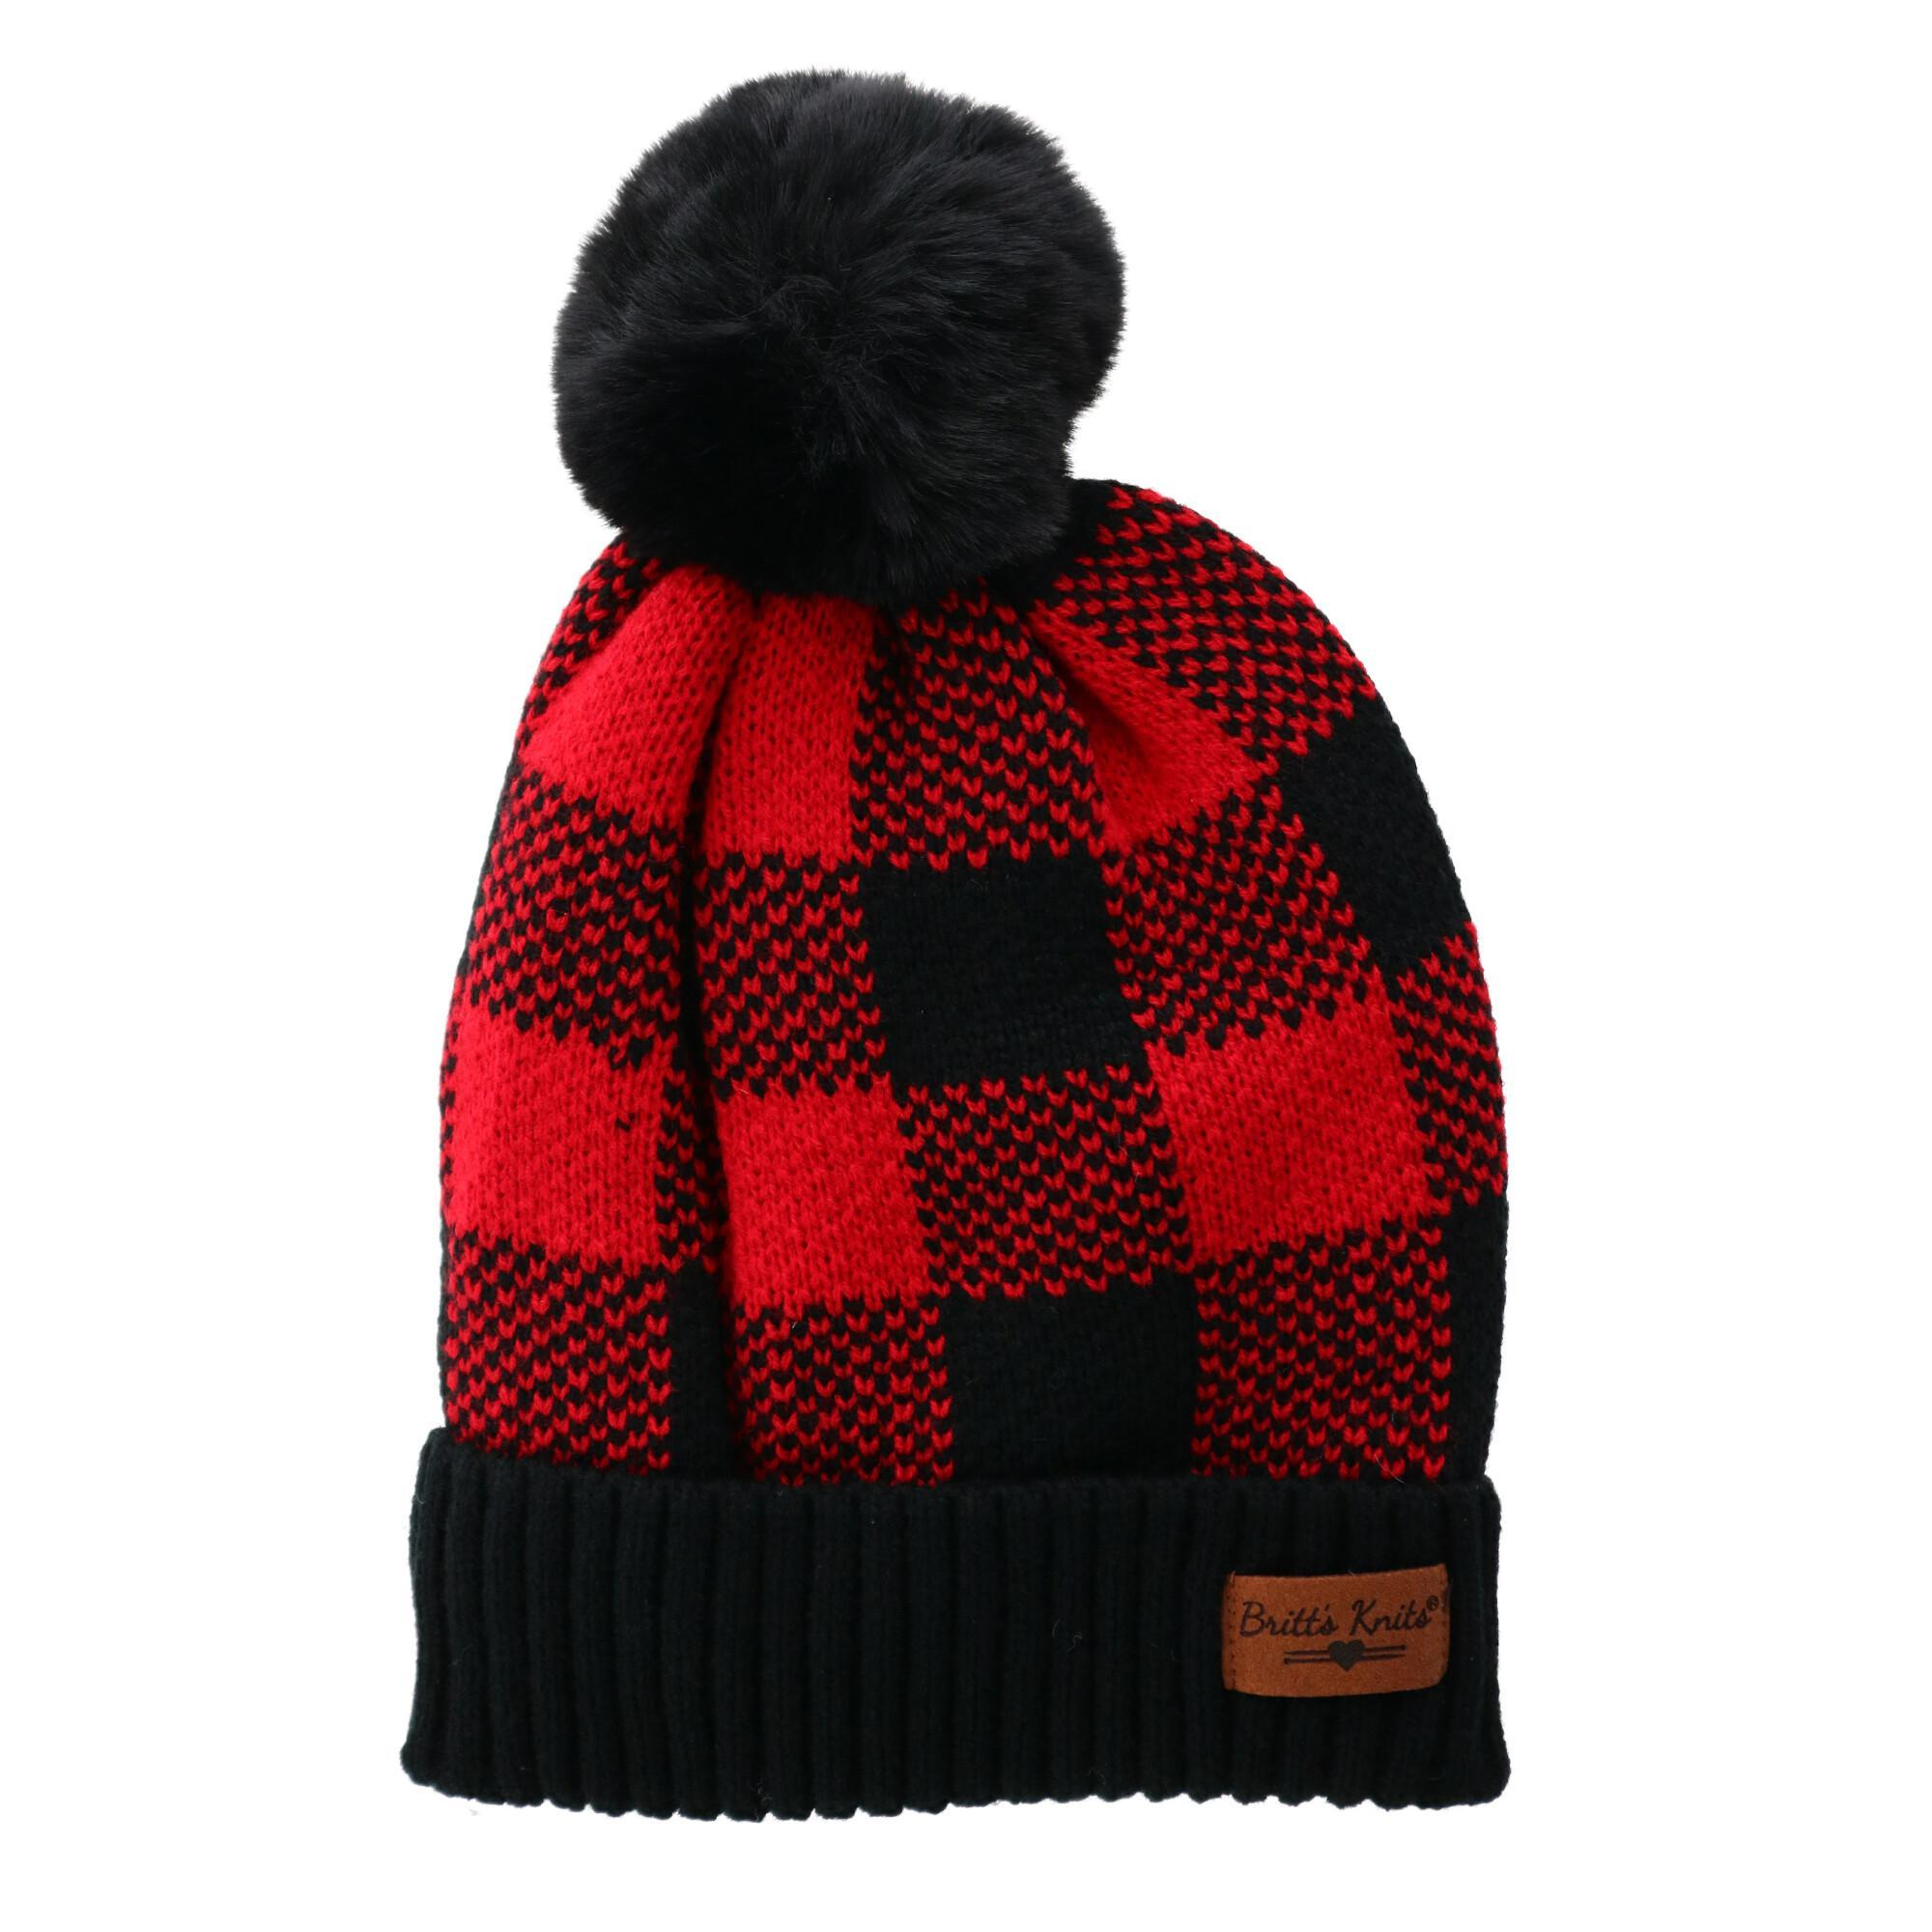 DM - Buffalo Plaid Knit Beanie with Pom Pom - Knock Your Socks Off